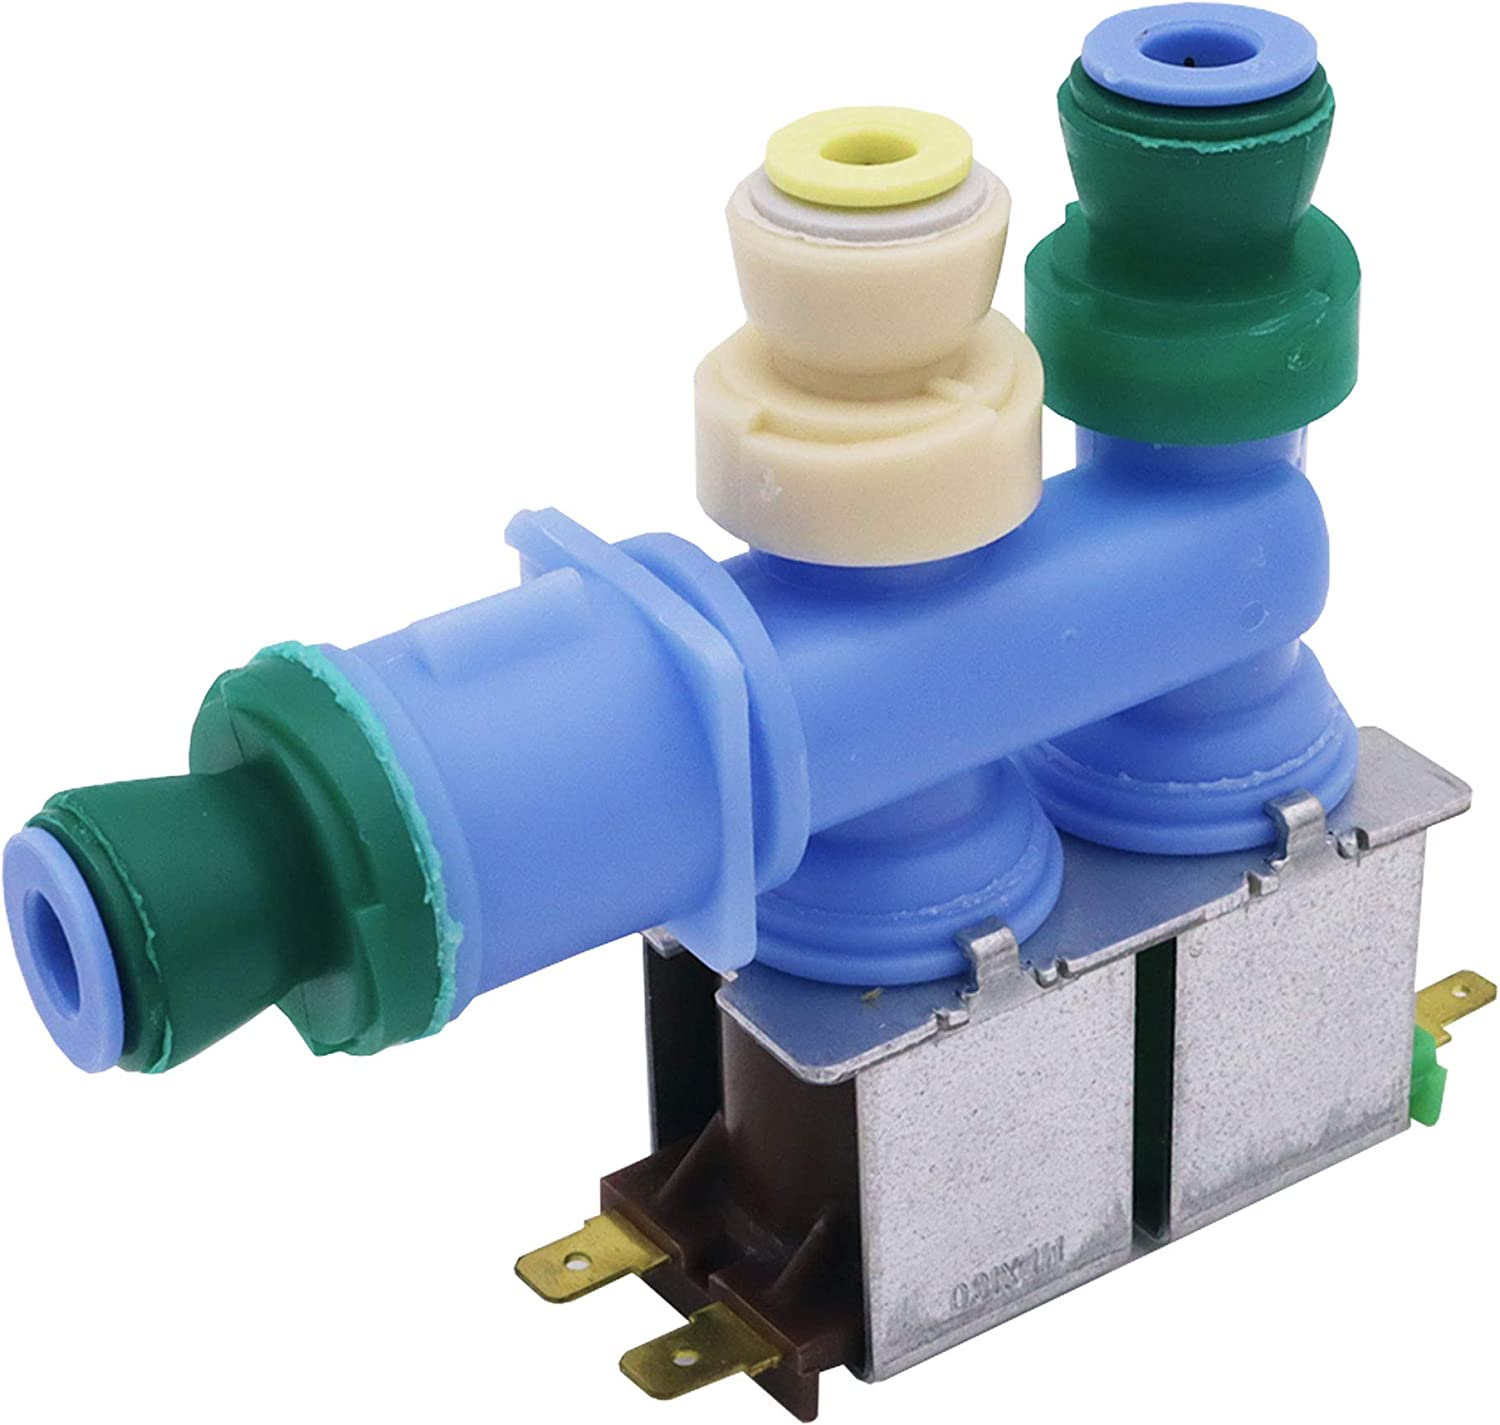 What's Up? W10312696 Water Inlet Valve Compatible for Whirlpool Washer Replace AP6019288 PS11752594